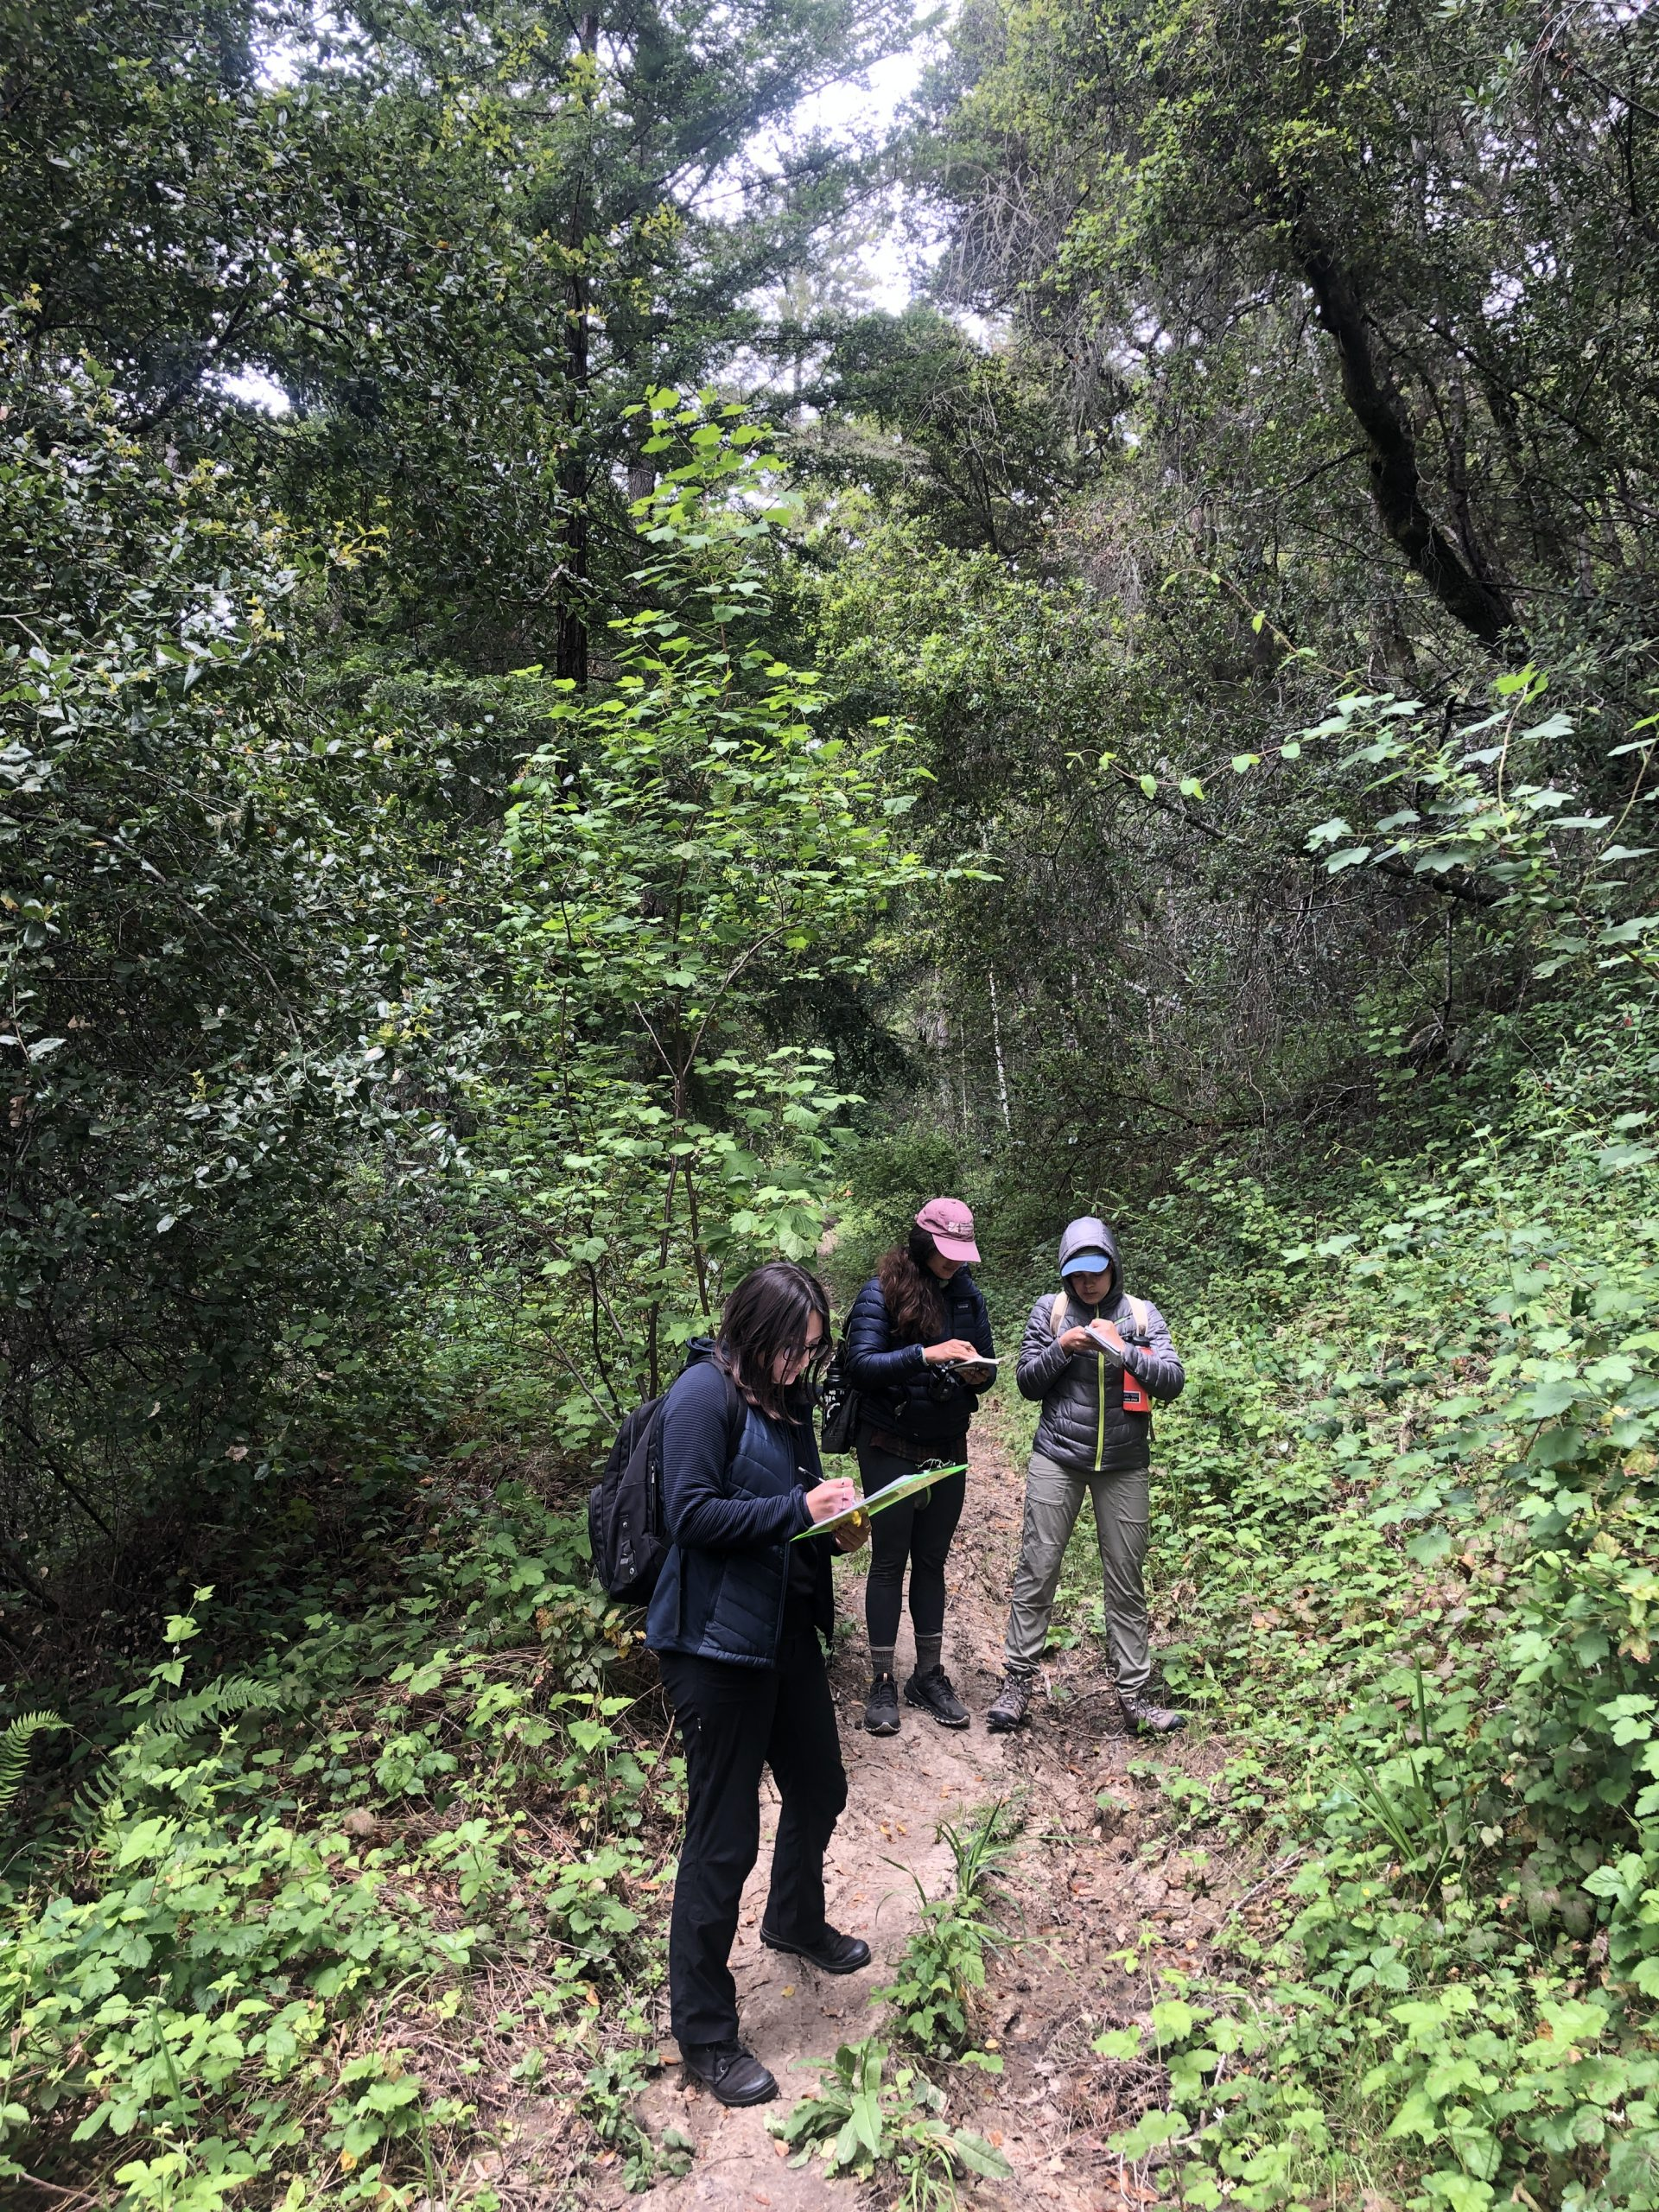 Mariana, Lucy, and Andrea jot down a list of plant species while hiking through the Santa Cruz mountains. Photo credit: Brett Hall, courtesy of University of California Santa Cruz Arboretum.